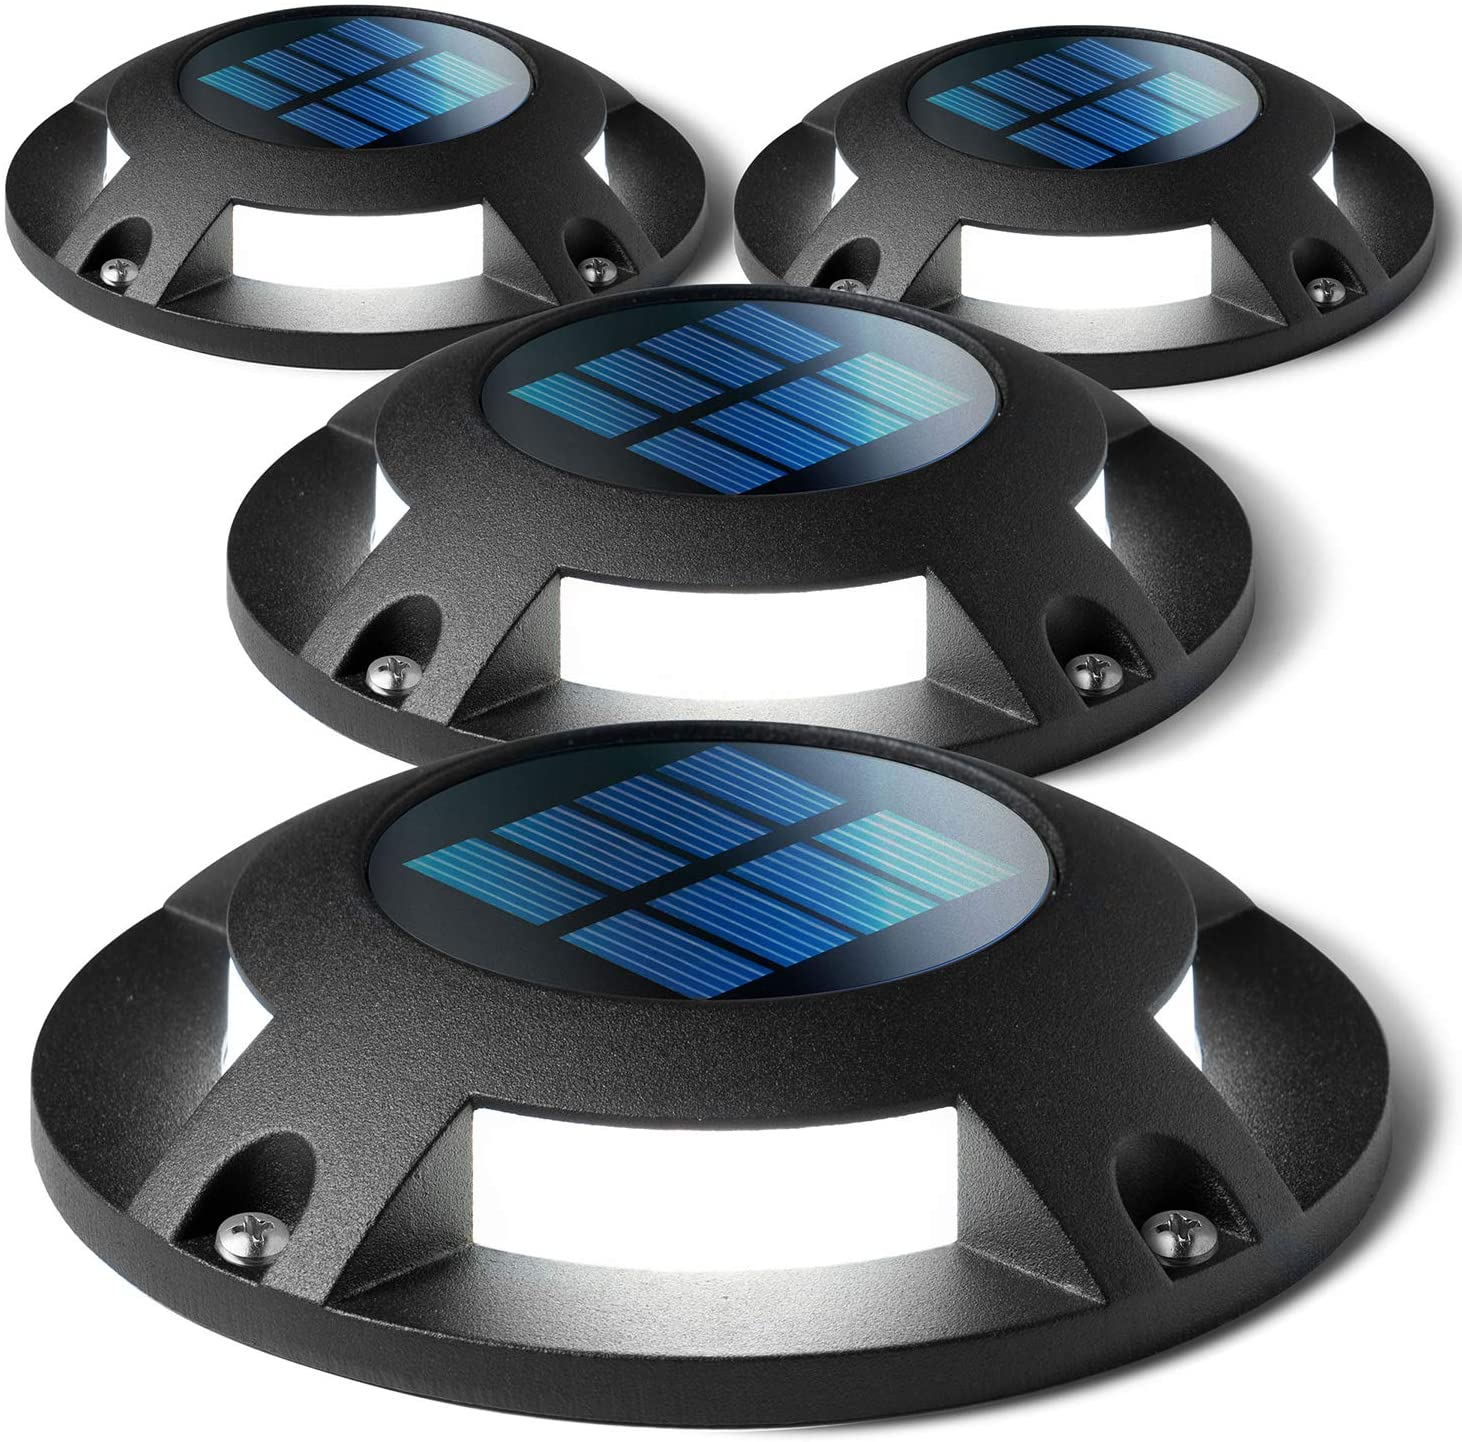 Home Zone Security Solar Deck Lights - Outdoor Solar Dock and Driveway Path Lights, Weatherproof with No Wiring Required, Black (4-Pack)